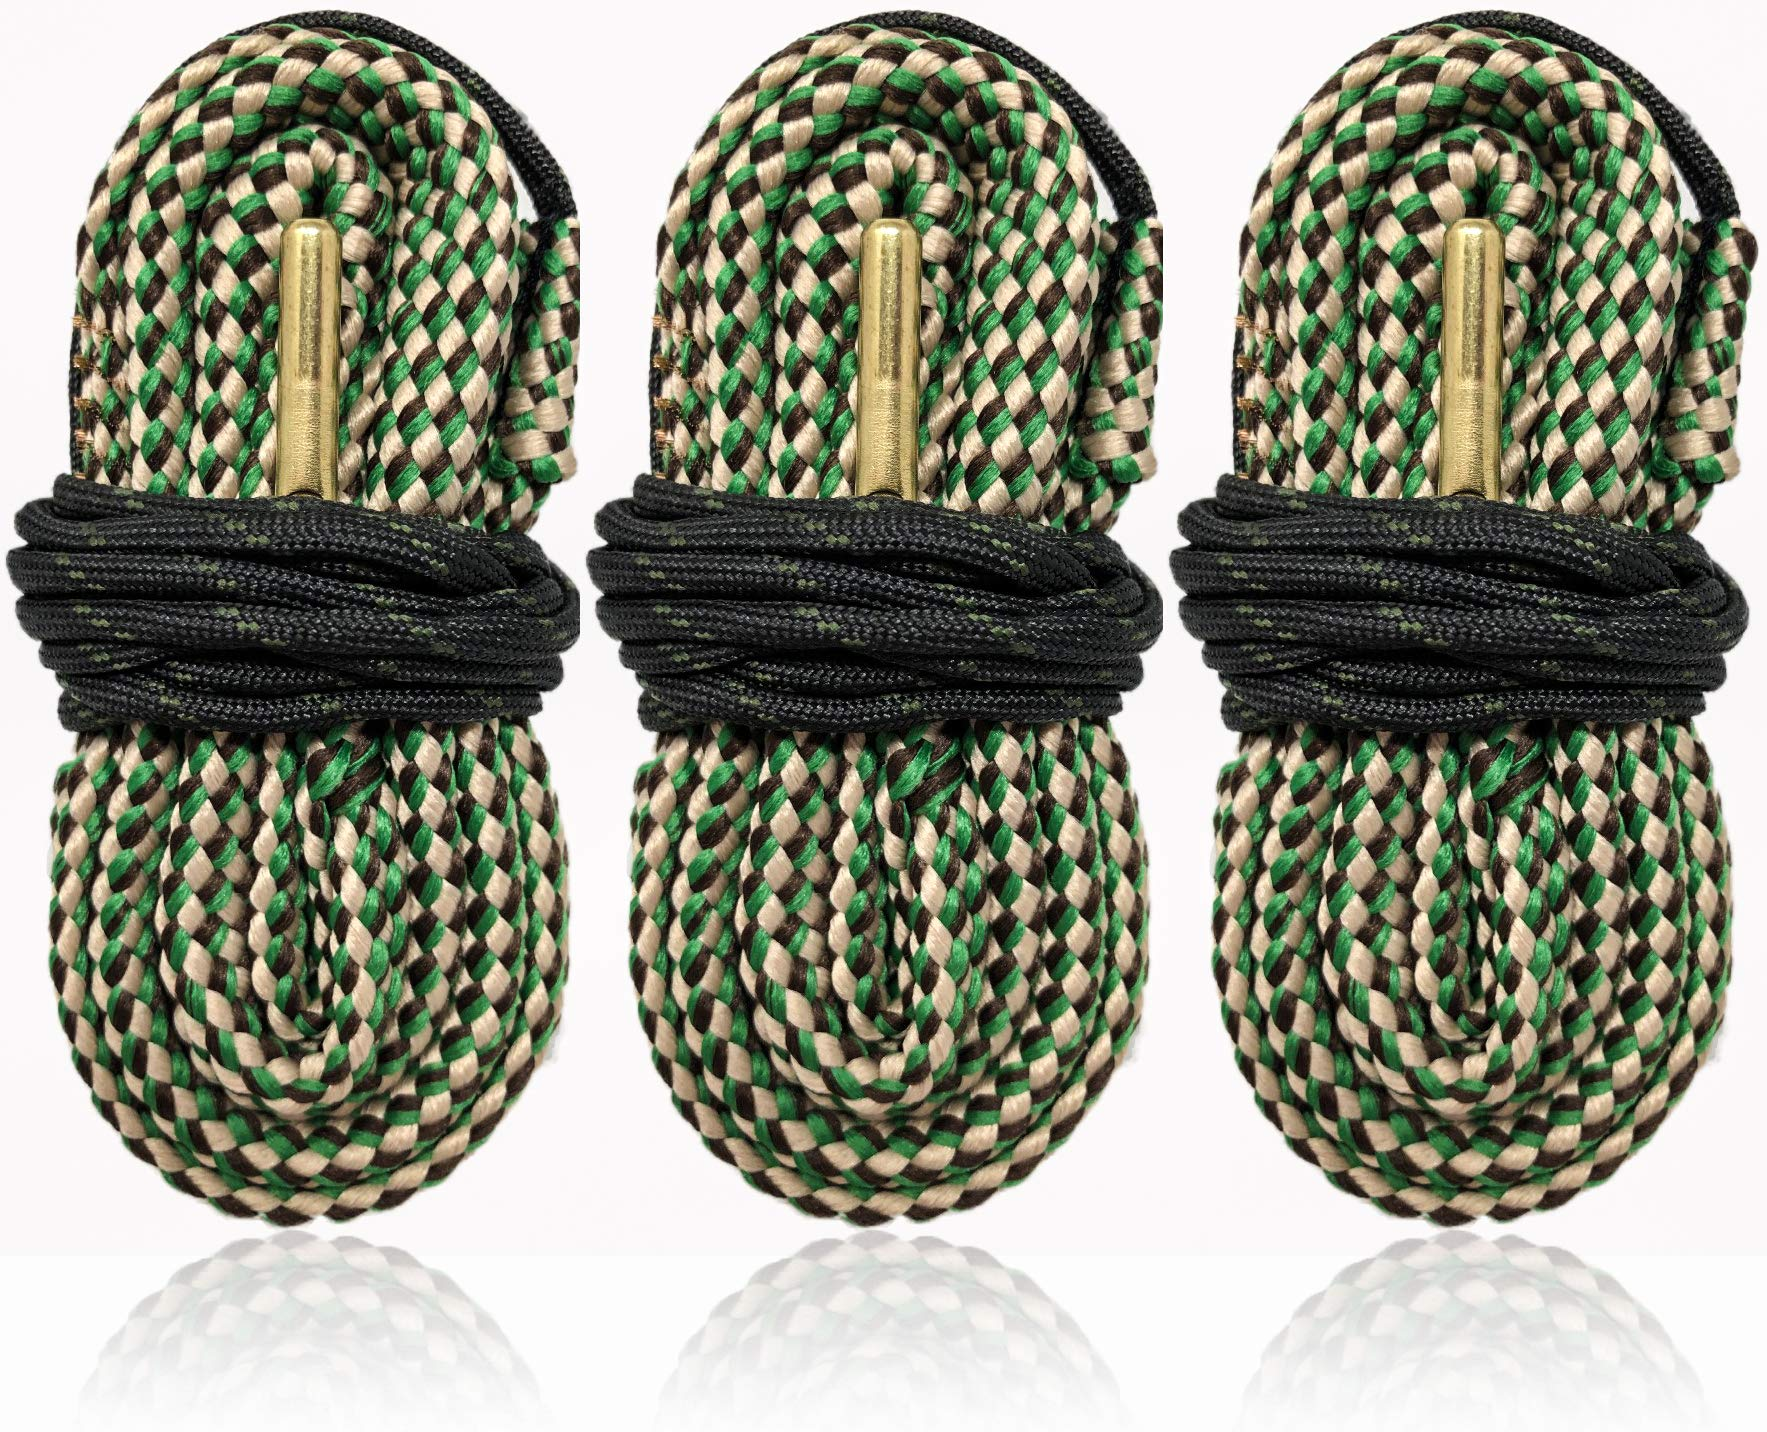 Bore Snakes Cleaning Kit 3 - Pack for .308 7.62x39 30-06 .300 30-30 .30 Caliber Rifles - Easy One Swipe Gun Cleaning by Cobra Bore Snake